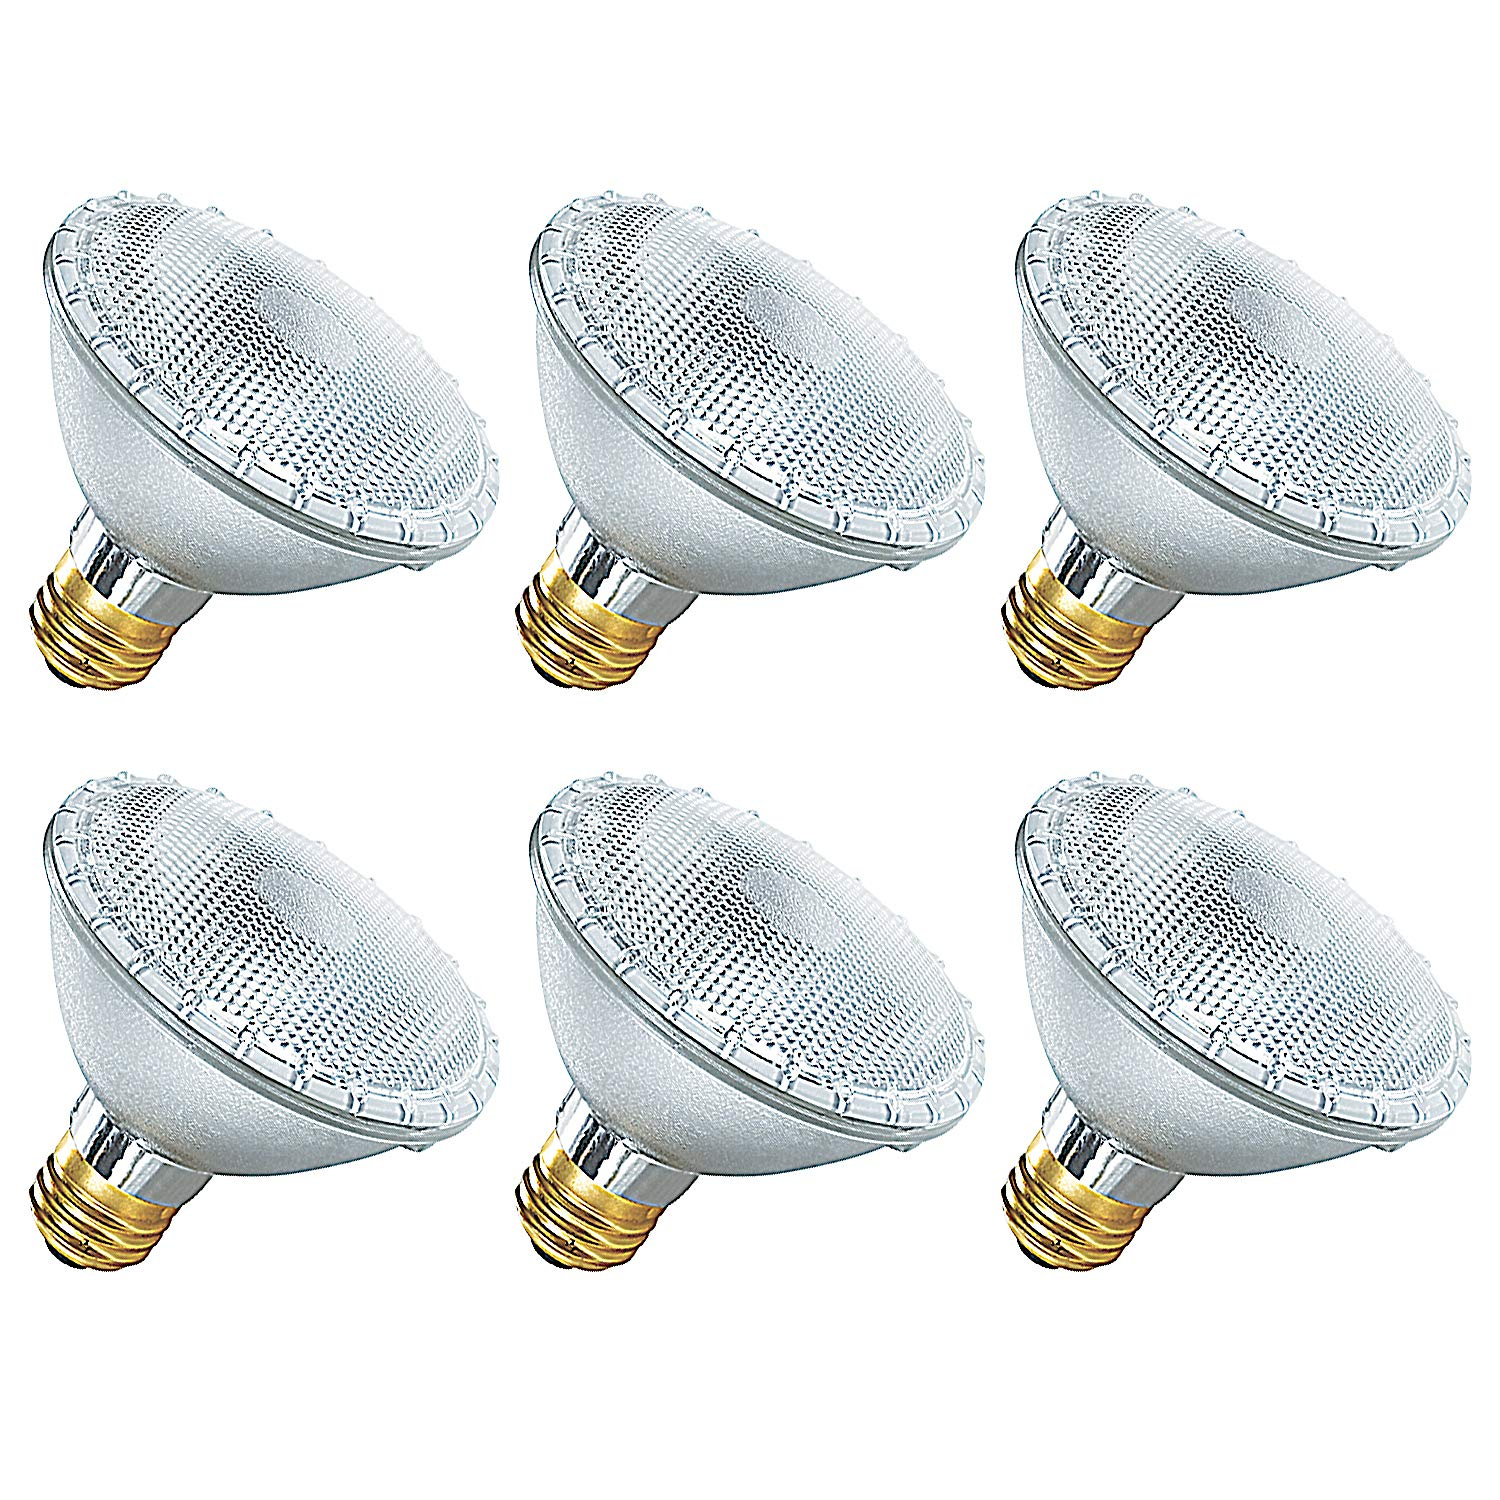 Luxrite LR20623 (6-Pack) PAR30 Eco Halogen Short Neck Light Bulb, 60 Watt (75w replacement) Dimmable, 40° Flood Beam Spread, 2900K, 1080 Lumens E26 Base, For Indoor/outdoor use.